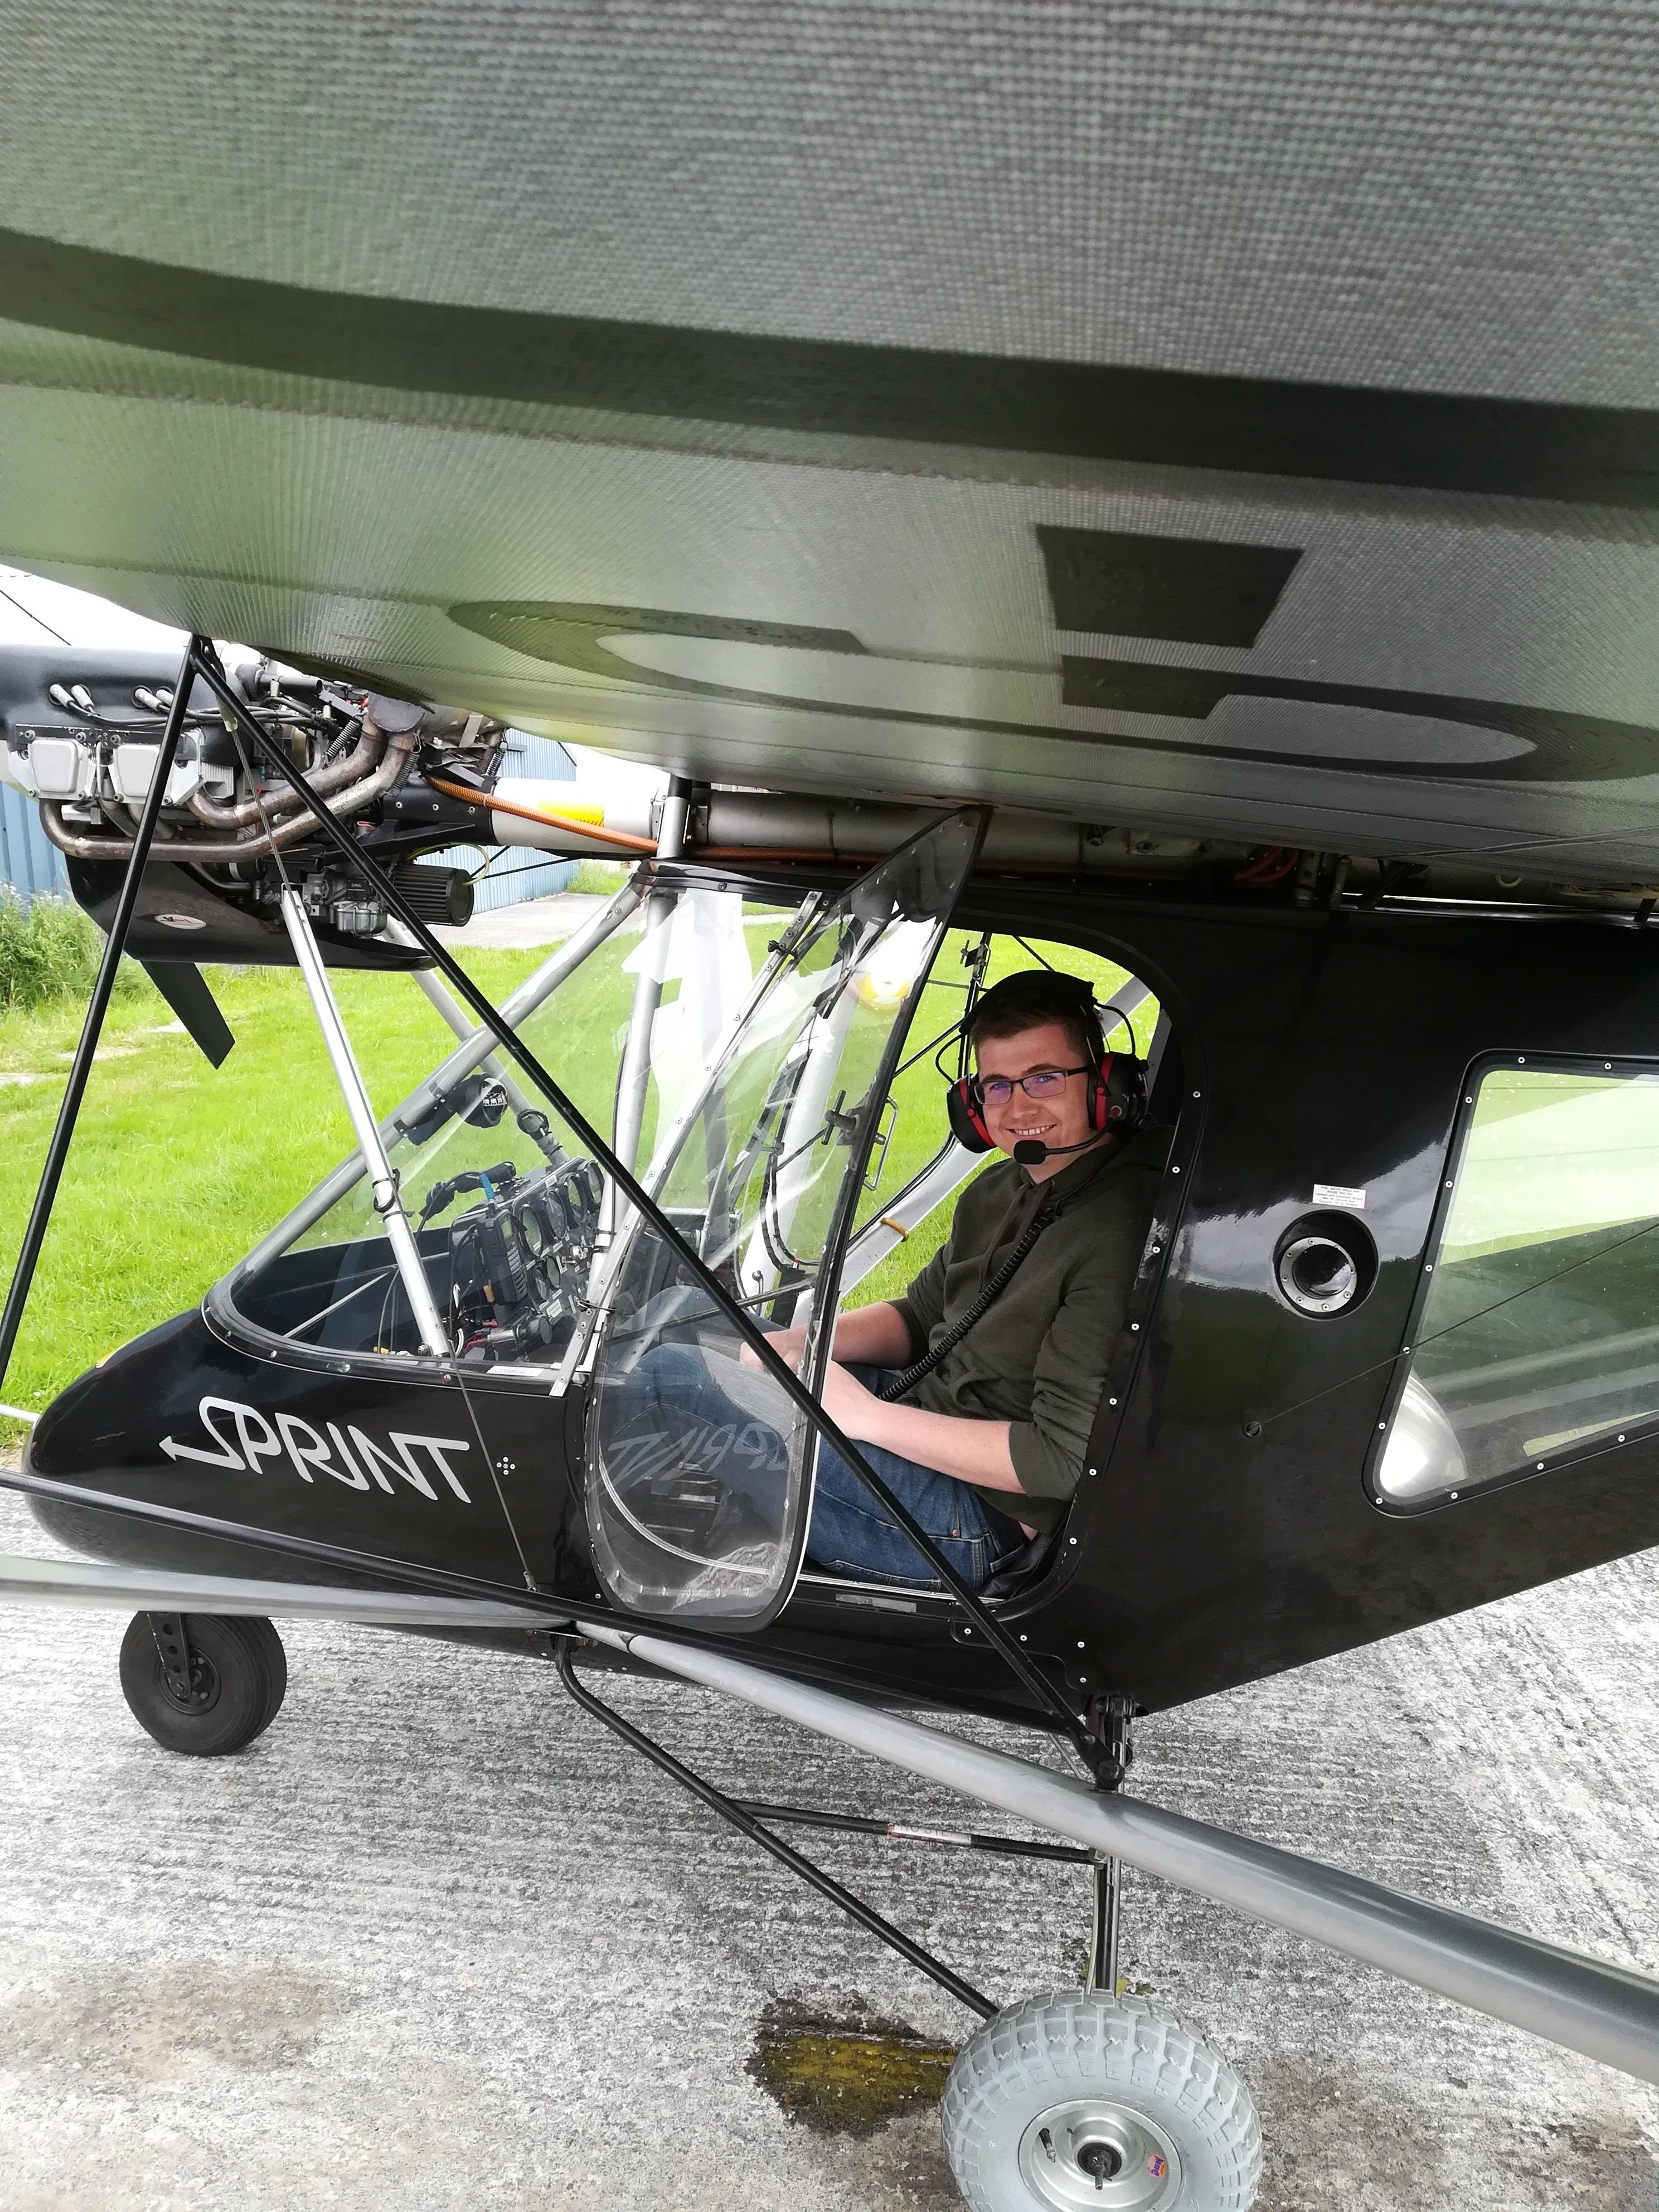 Jack Toner's First Solo Flight